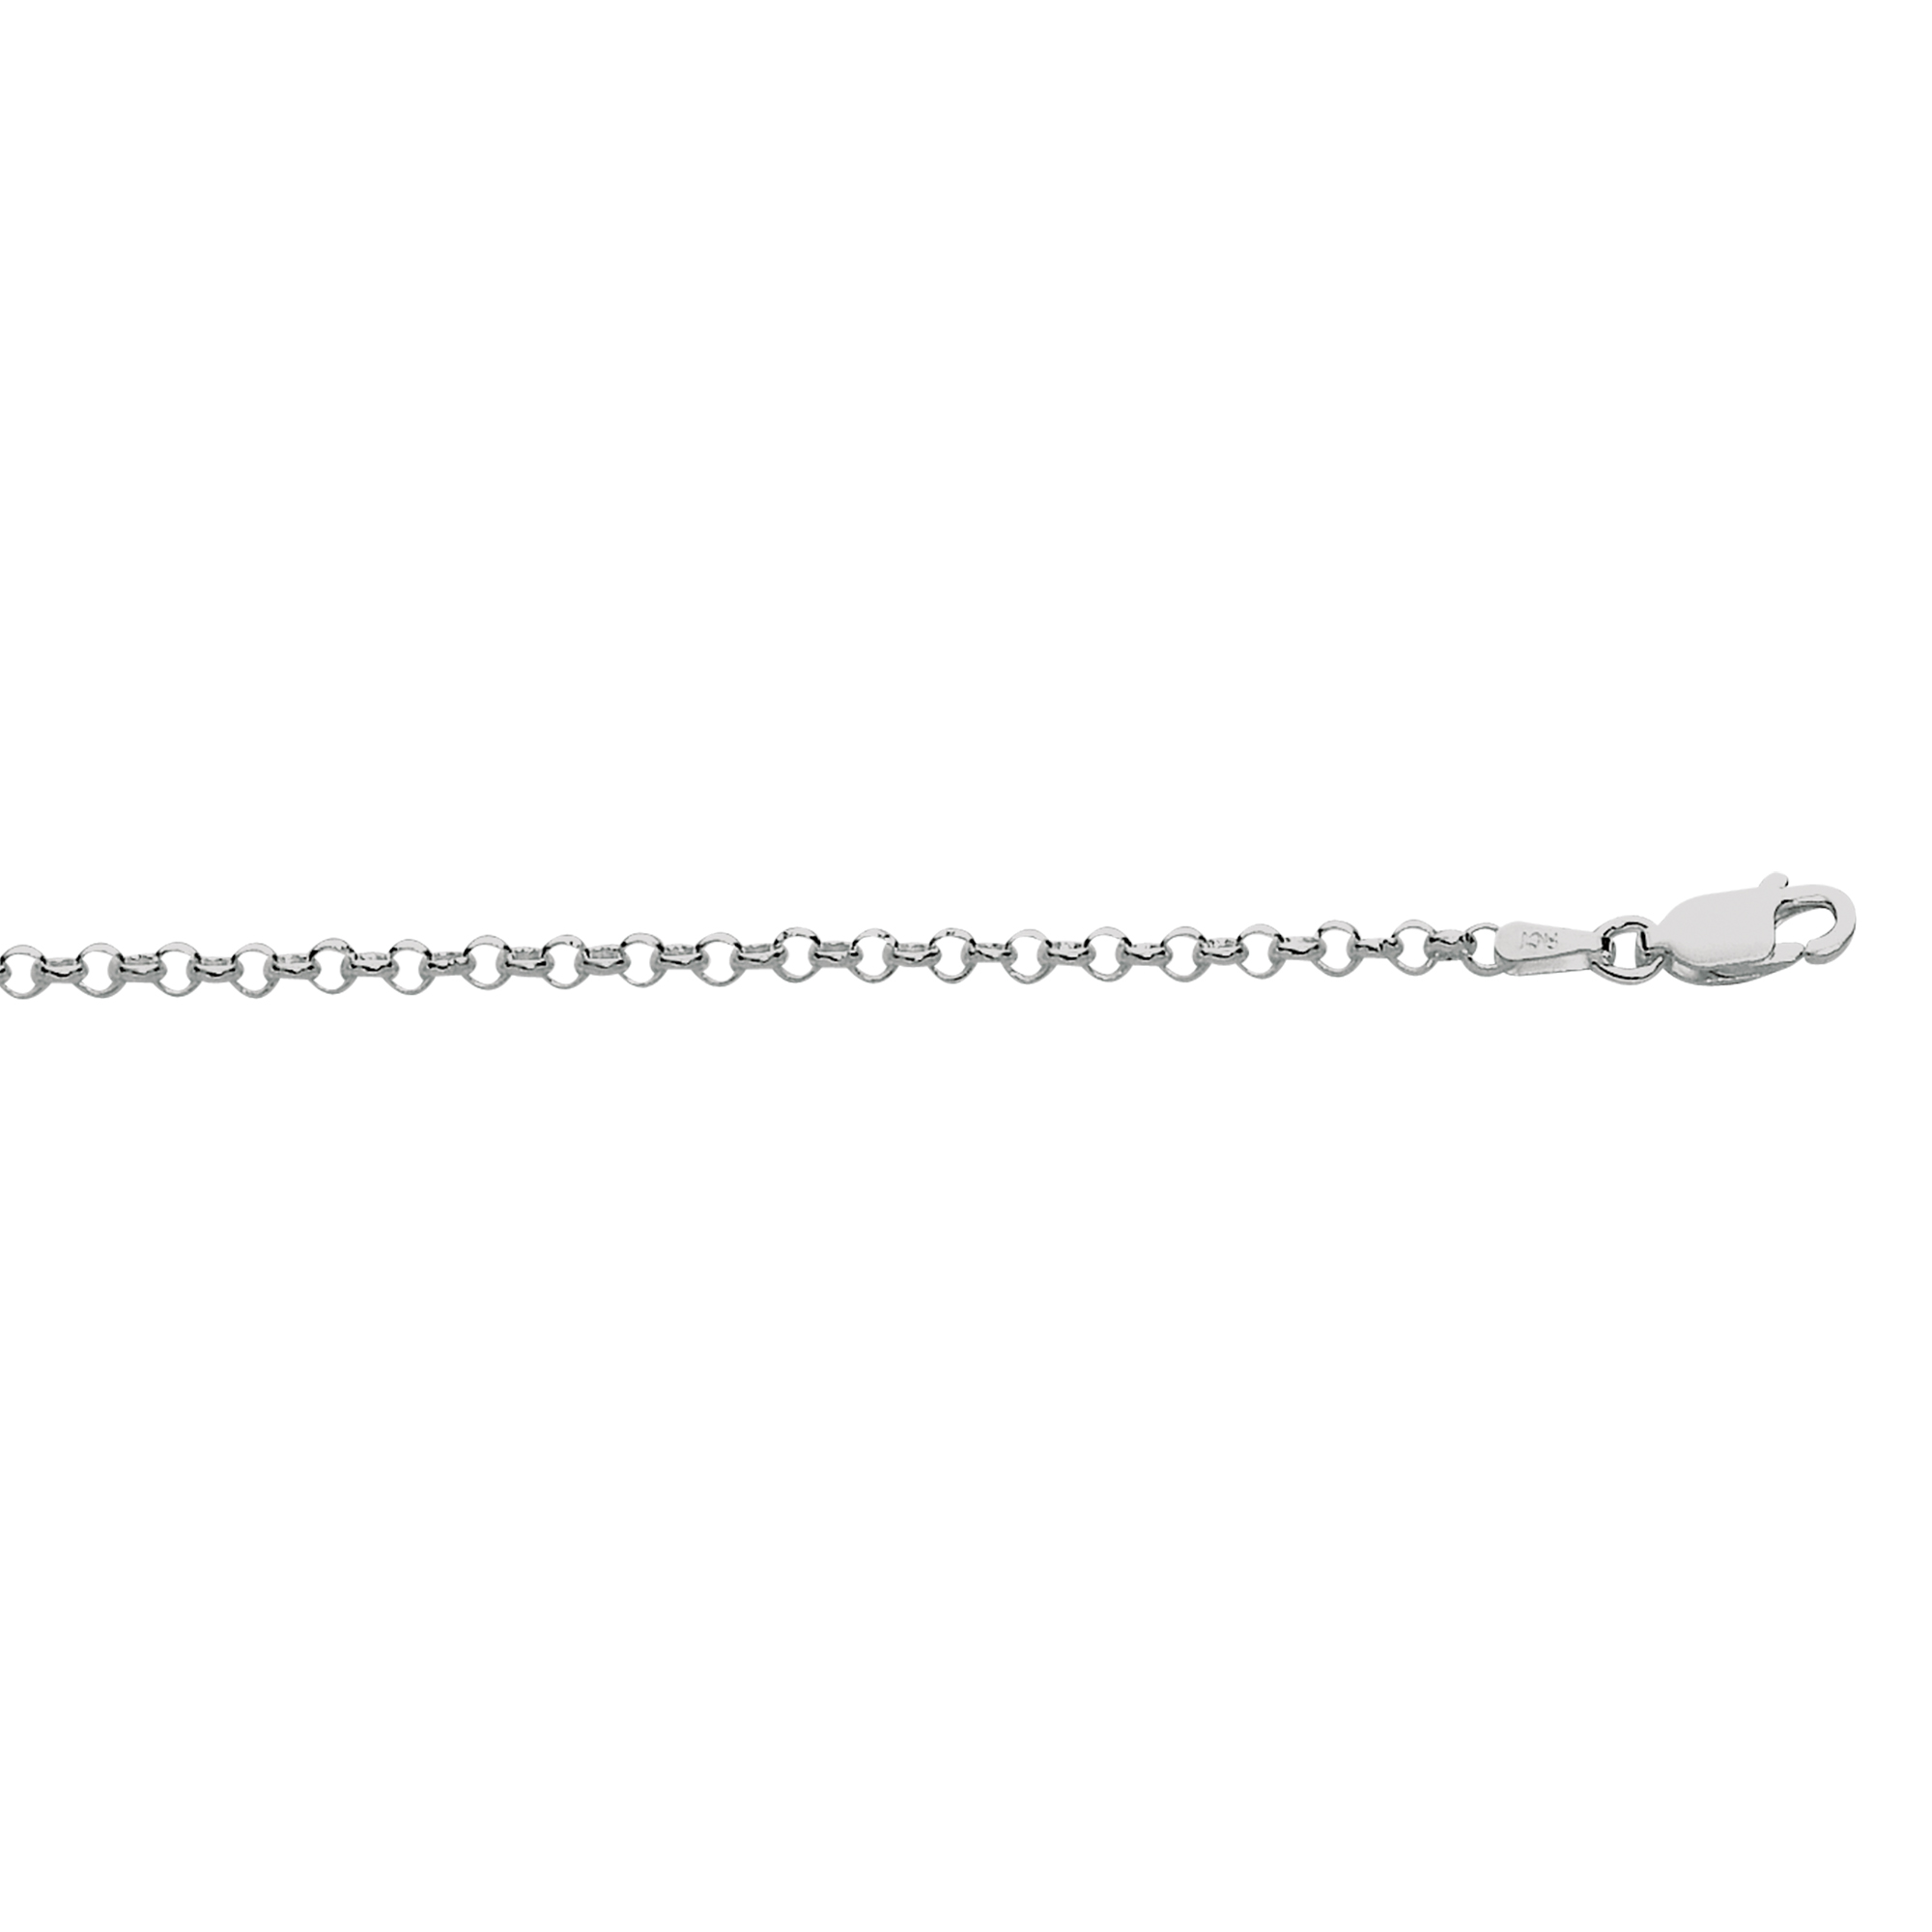 Silver 24 inches with Rhodium Finish 2.4mm Textured Diamond Cut Rolo Chain with Lobster Clasp